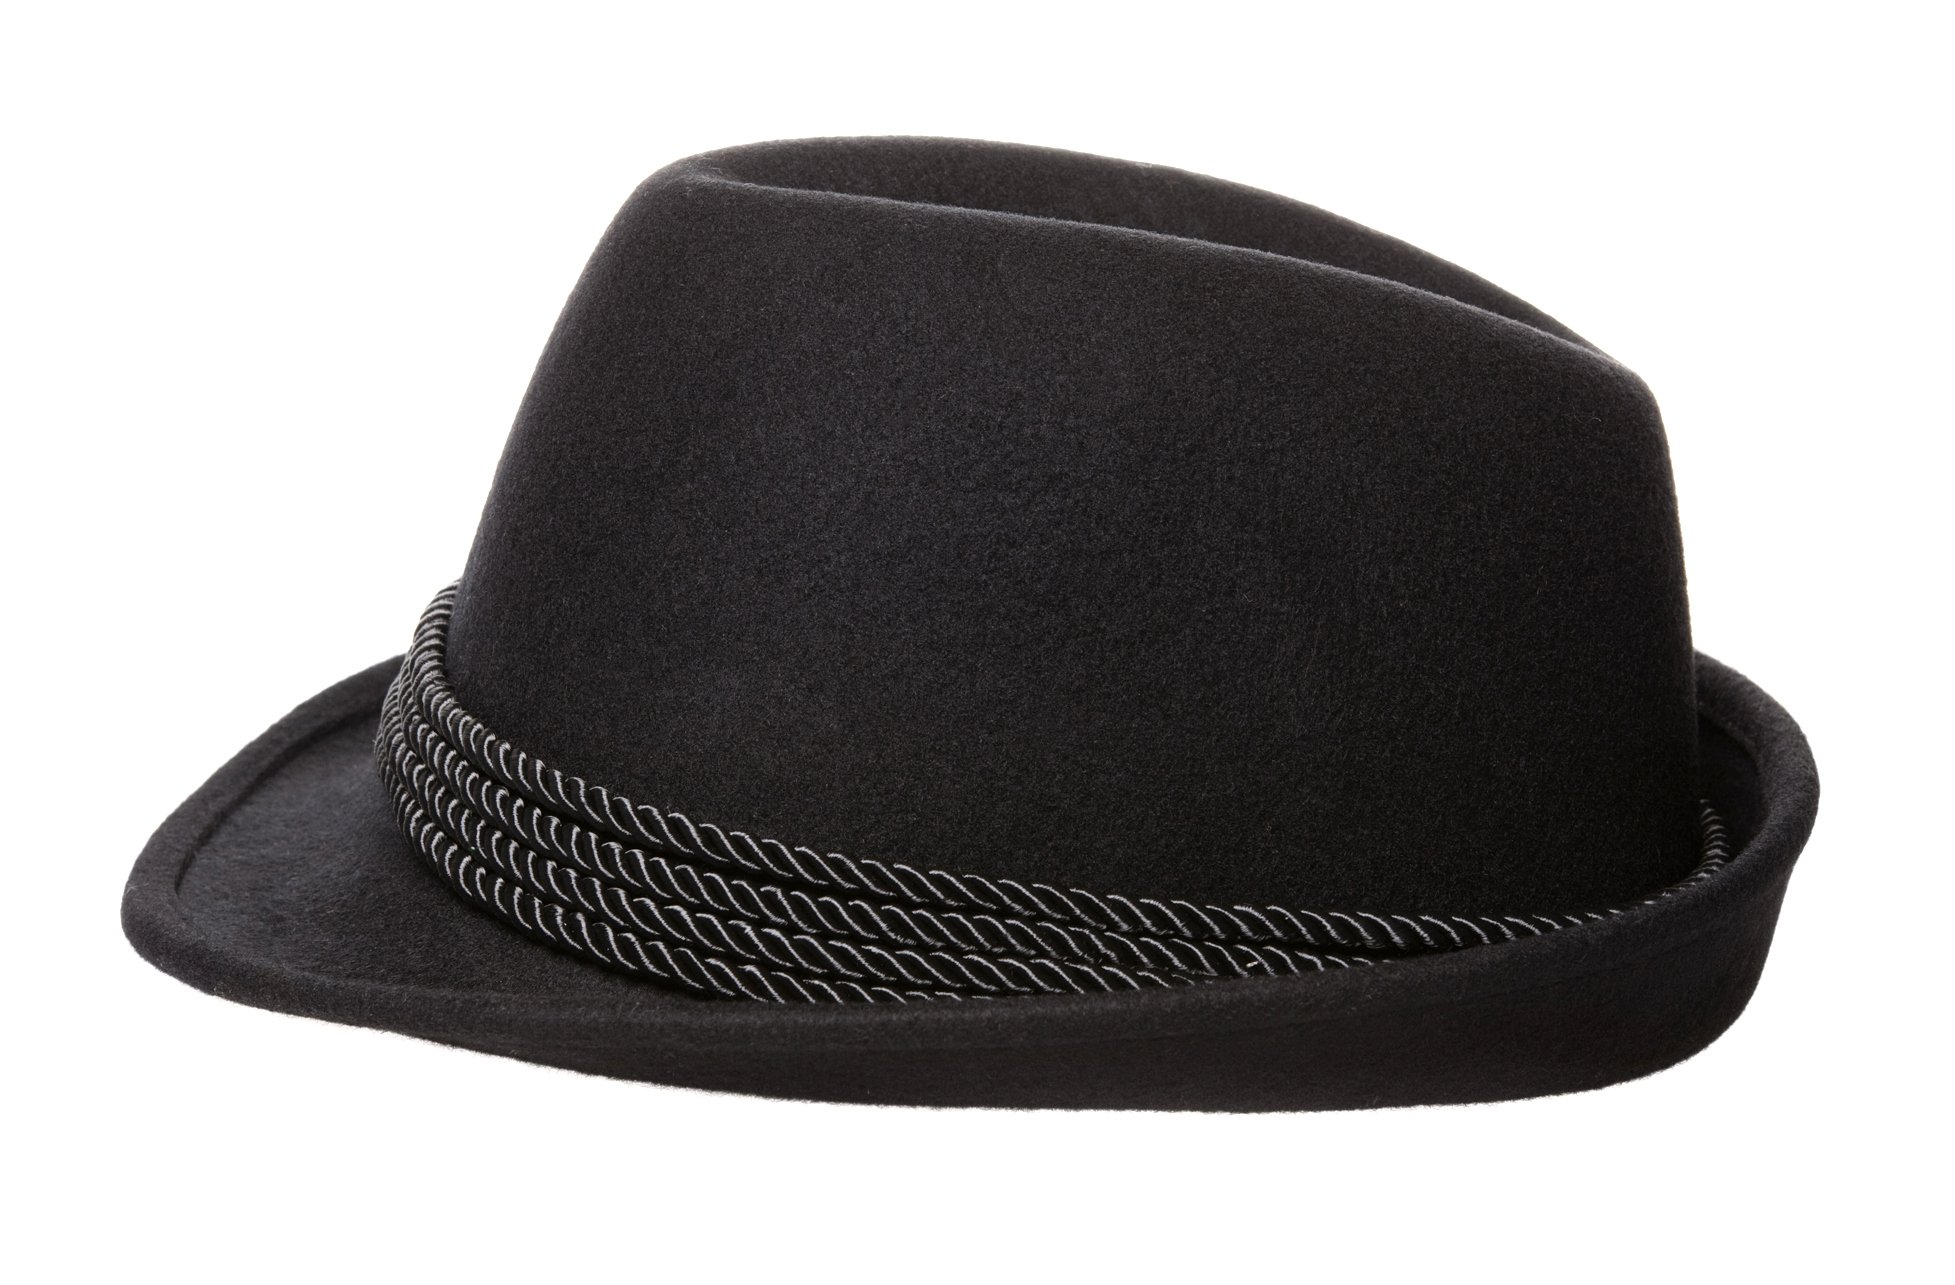 Holiday Oktoberfest Wool Bavarian Alpine Hat - Black Color, Large by Britta Products (Image #4)